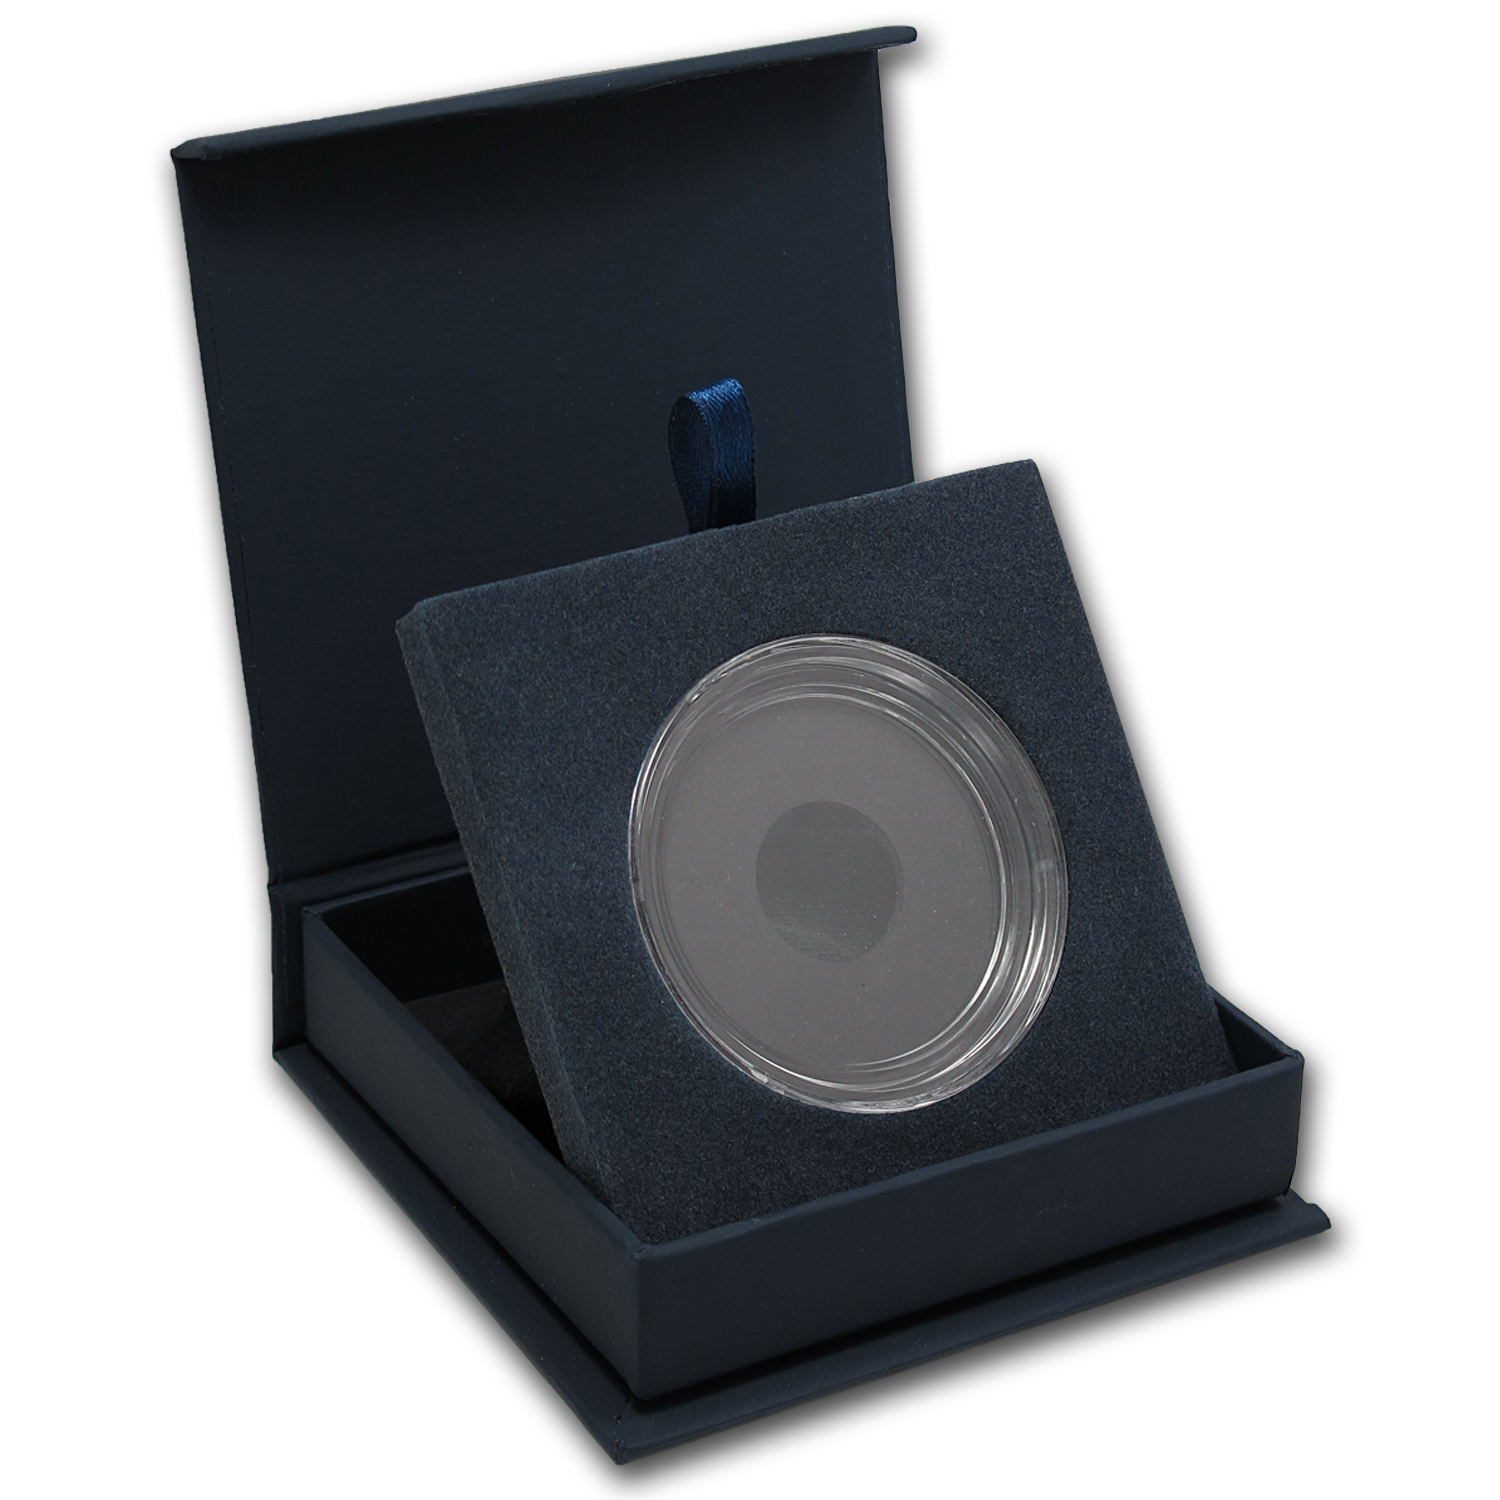 APMEX Gift Box - Includes 43.6 mm Direct Fit Air-Tite Holder